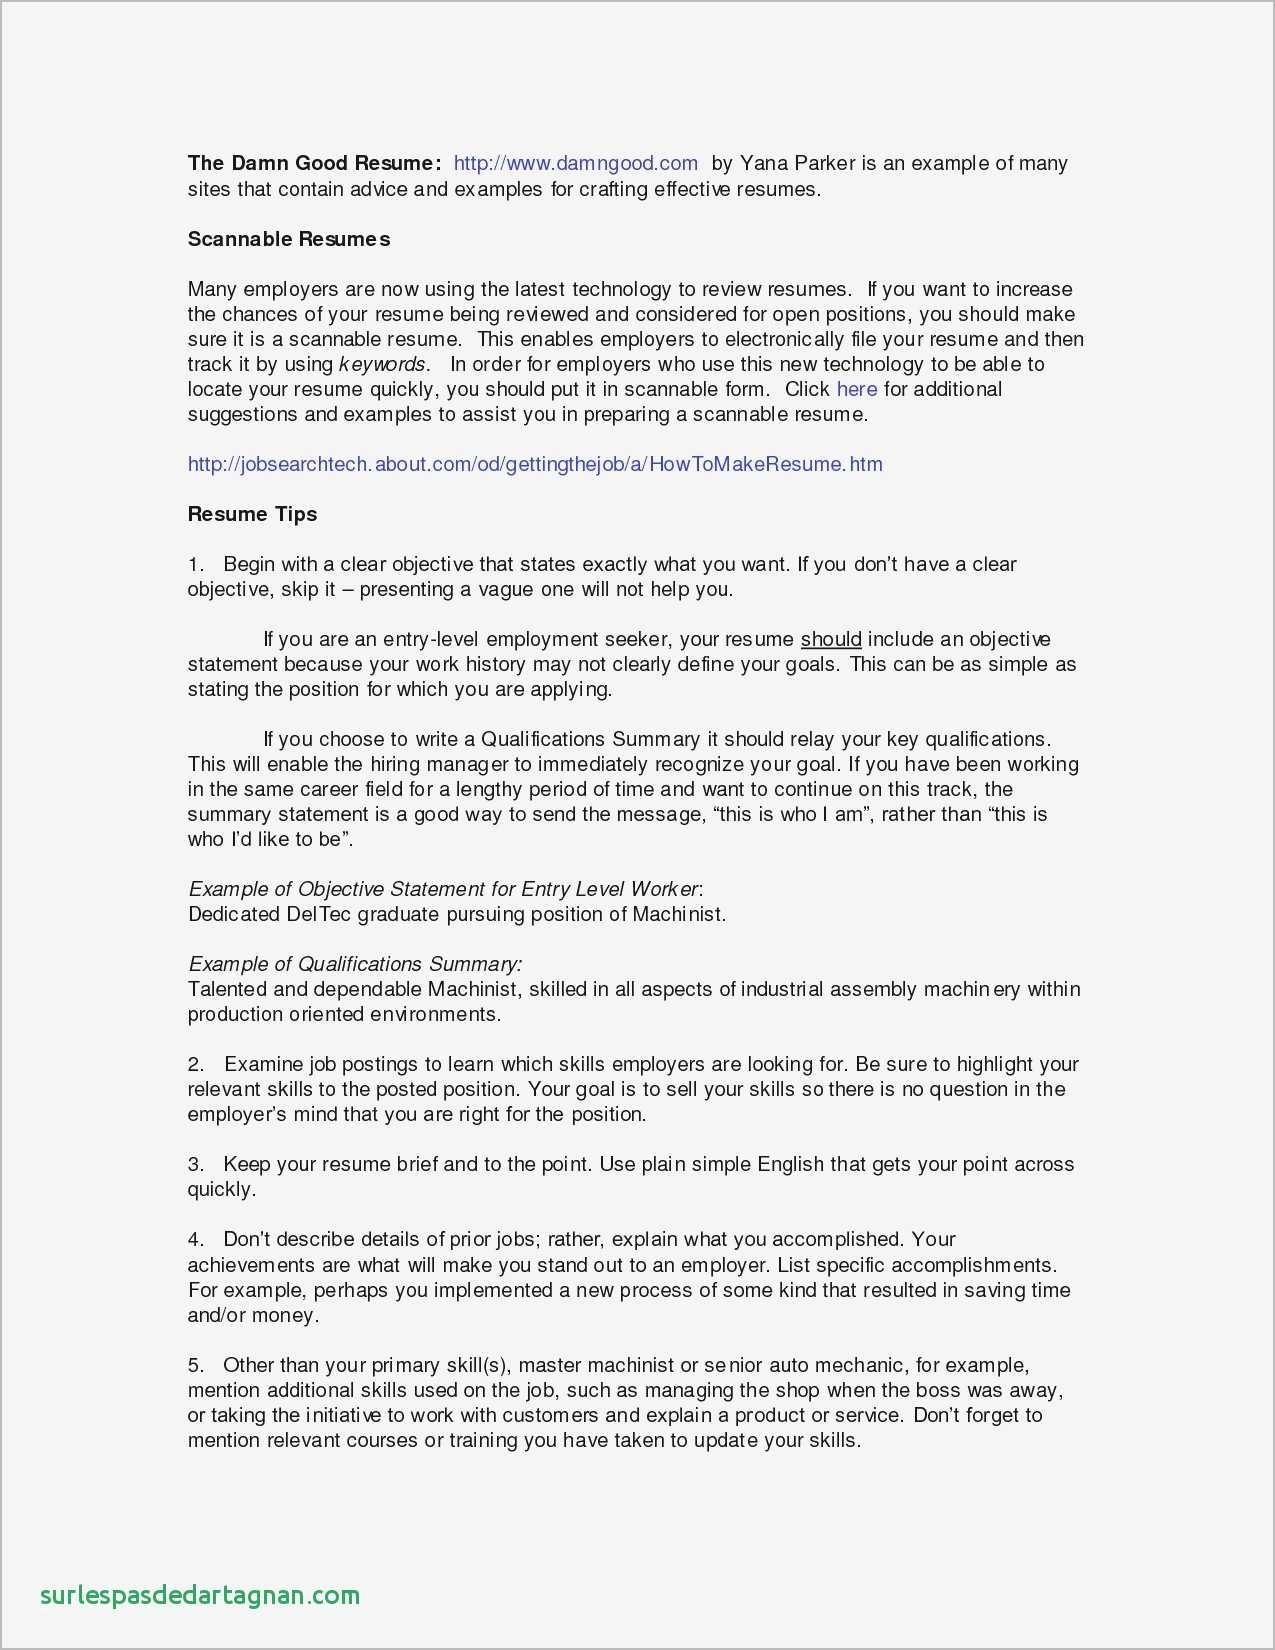 Best Resume Writing Services - 17 Resume Writing Panies